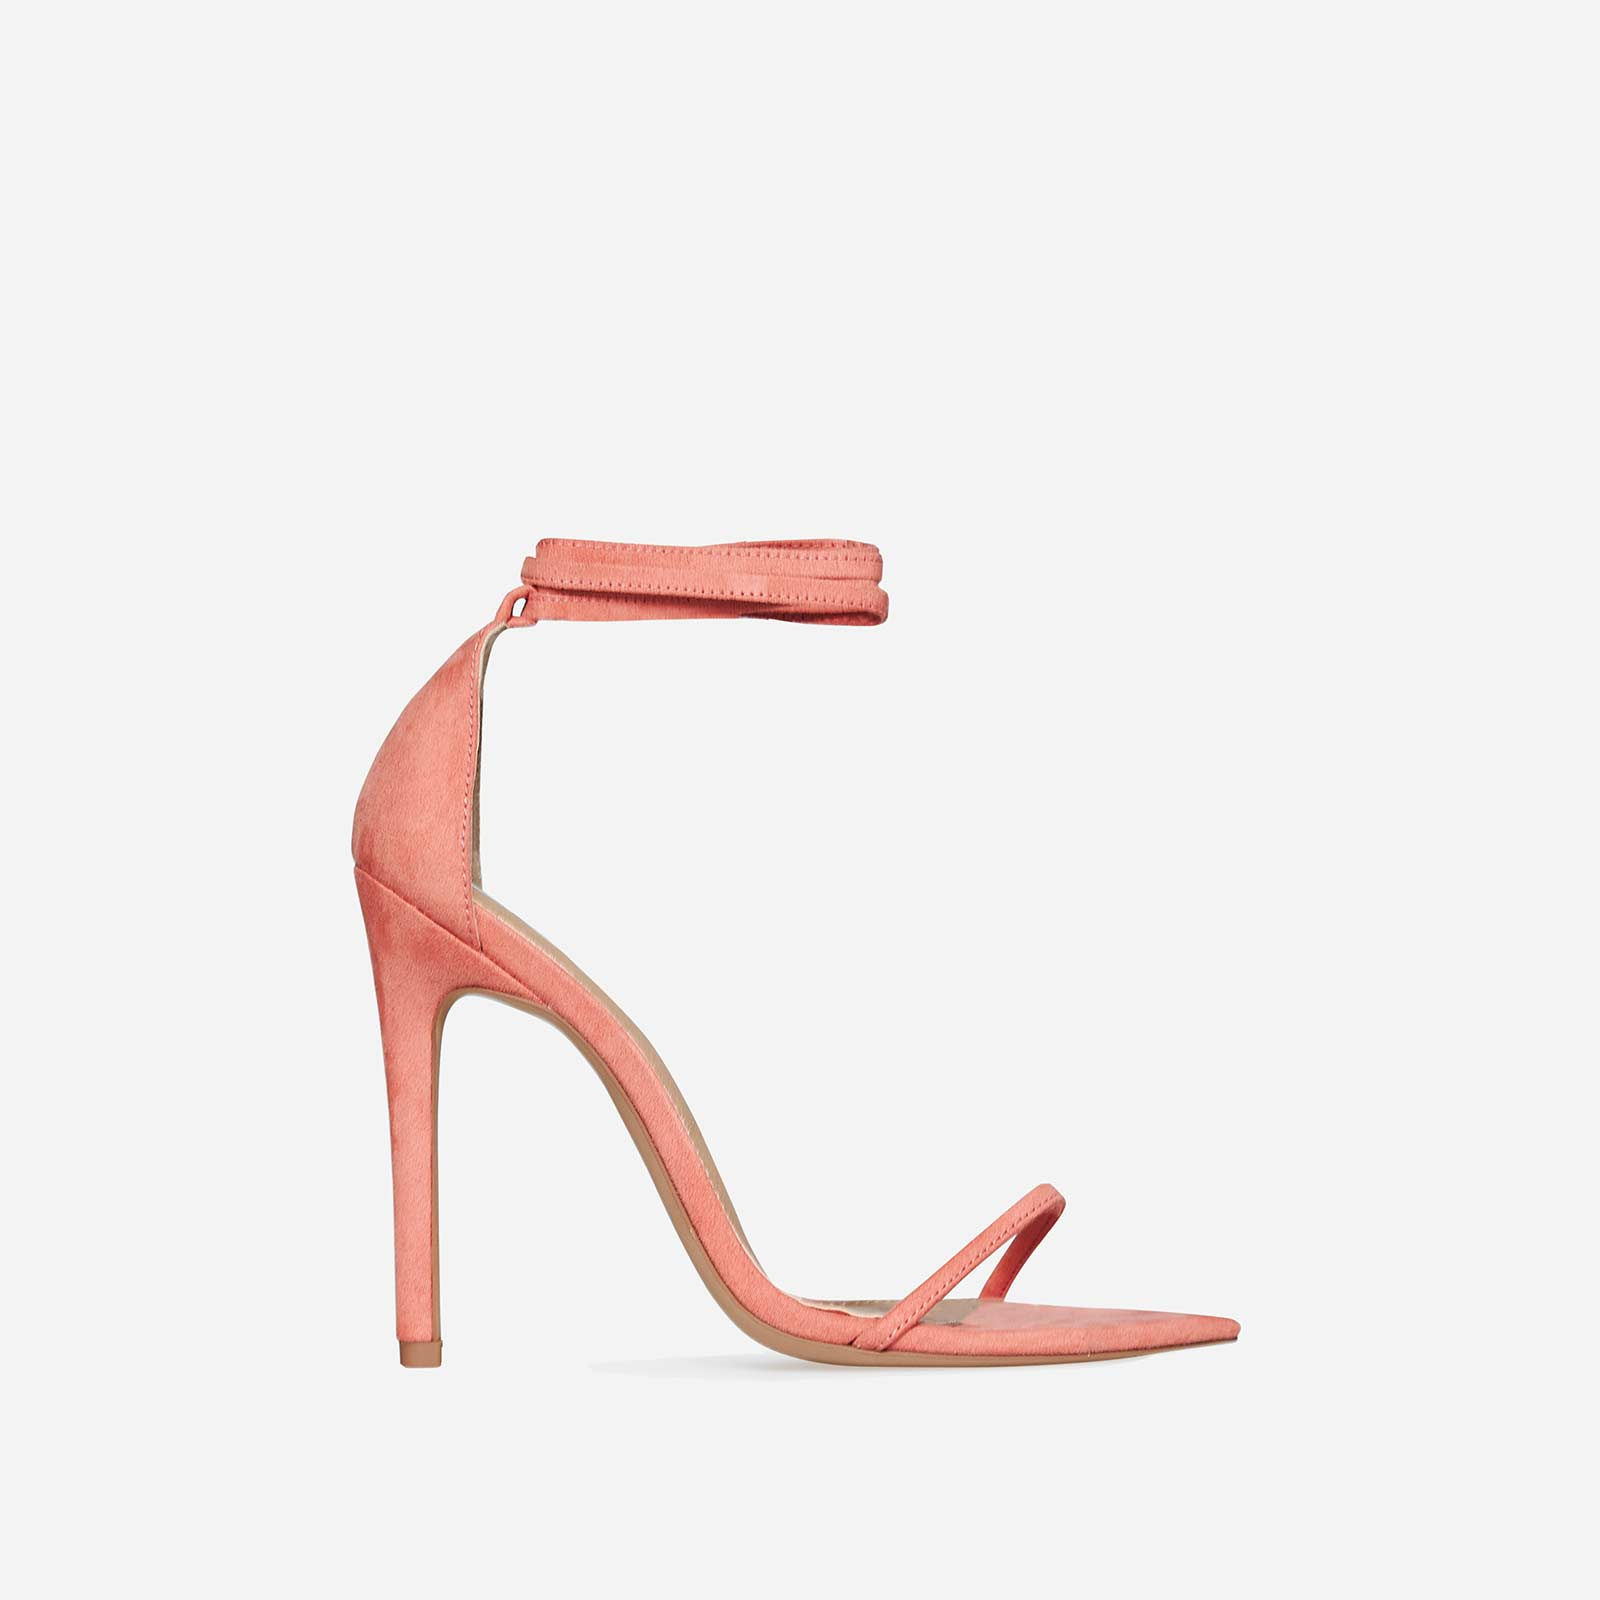 Ralley Lace Up Pointed Barely There Heel In Coral Faux Suede